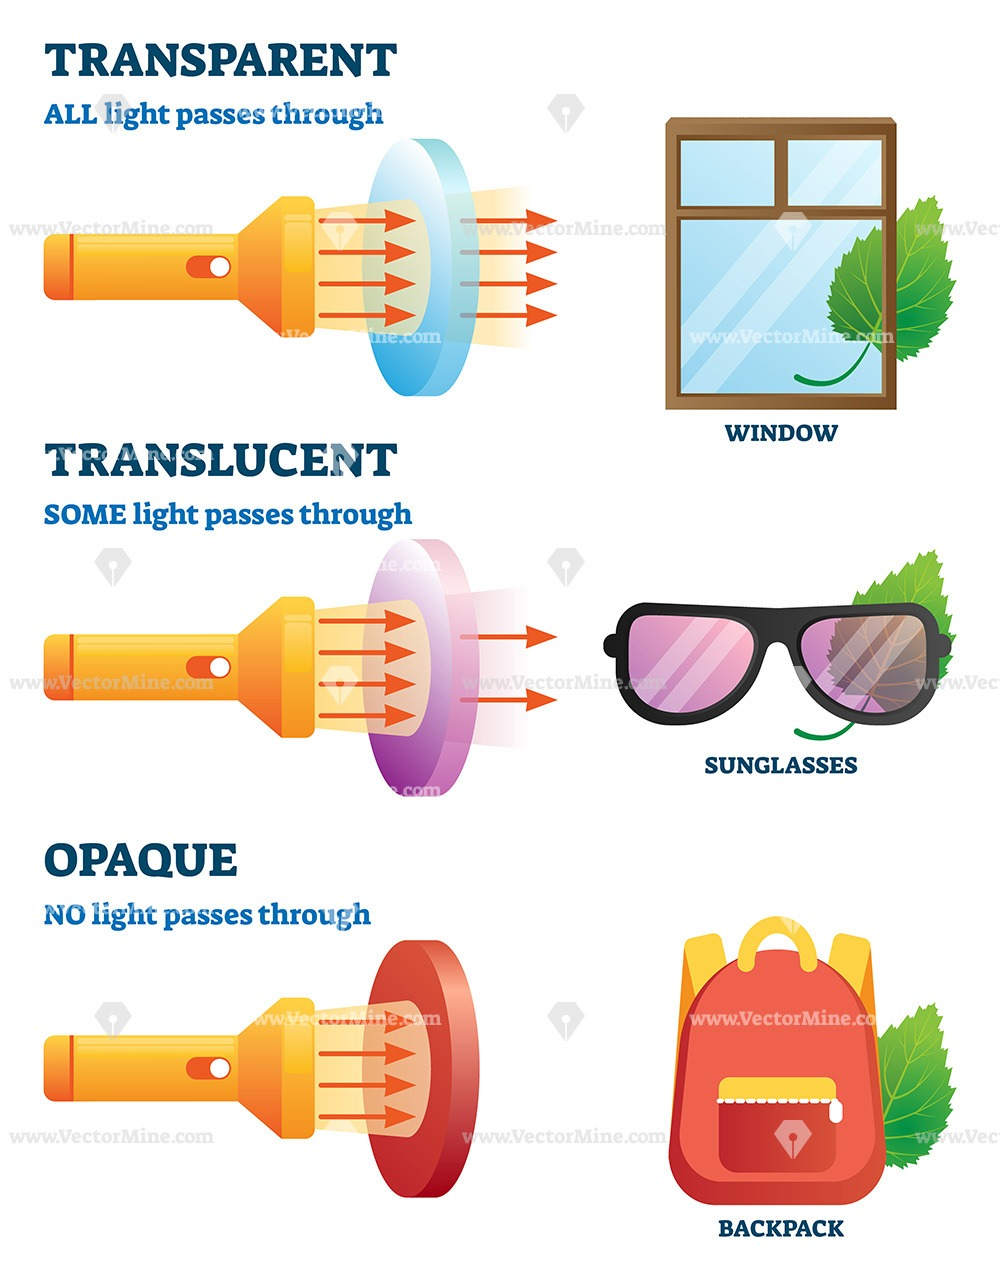 Transparent, translucent or opaque properties explanation vector illustration